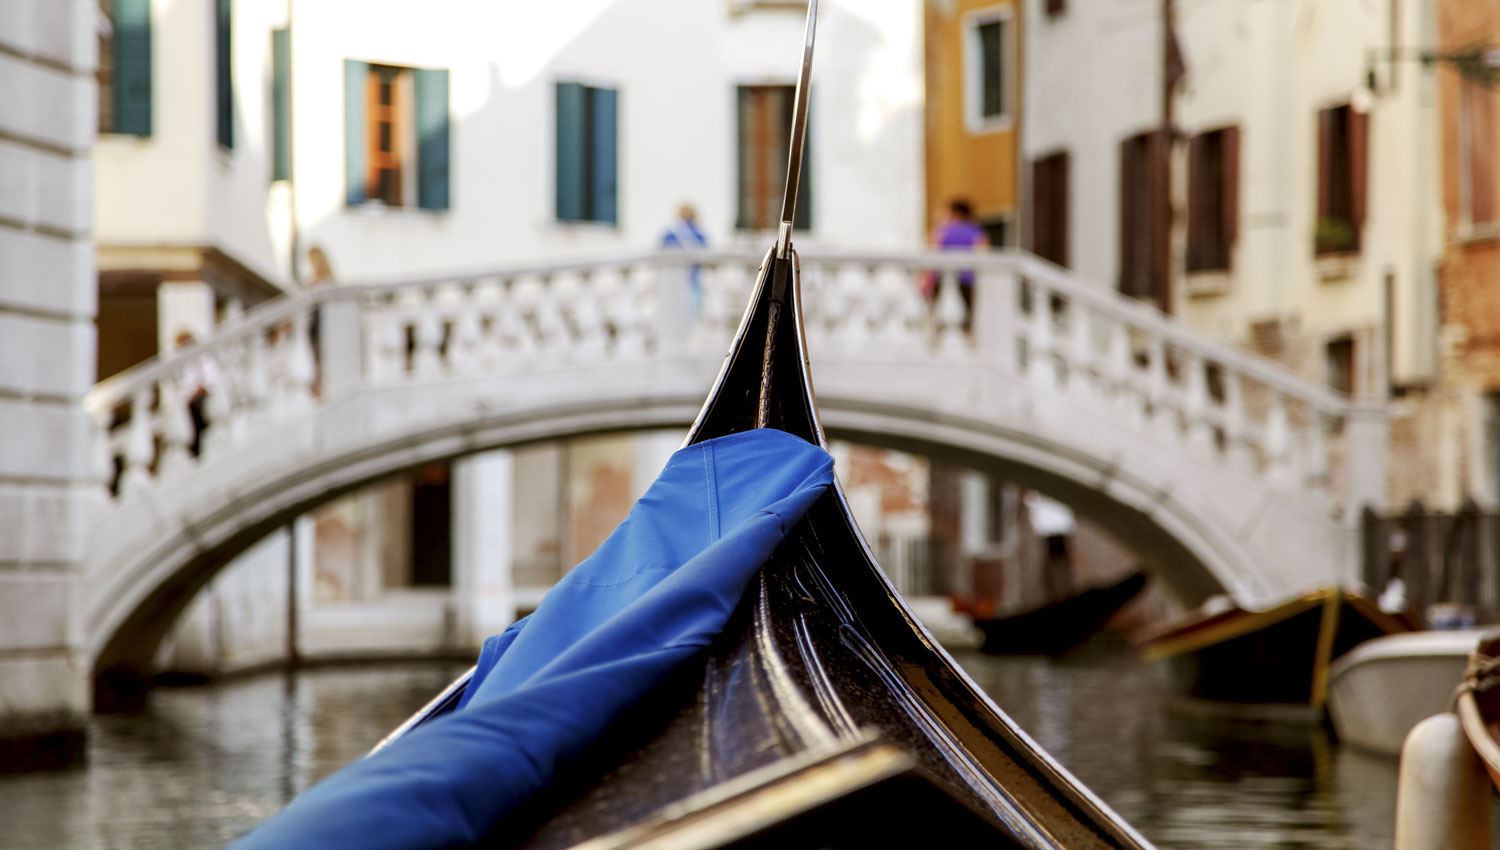 It only recently got its first female gondolier...